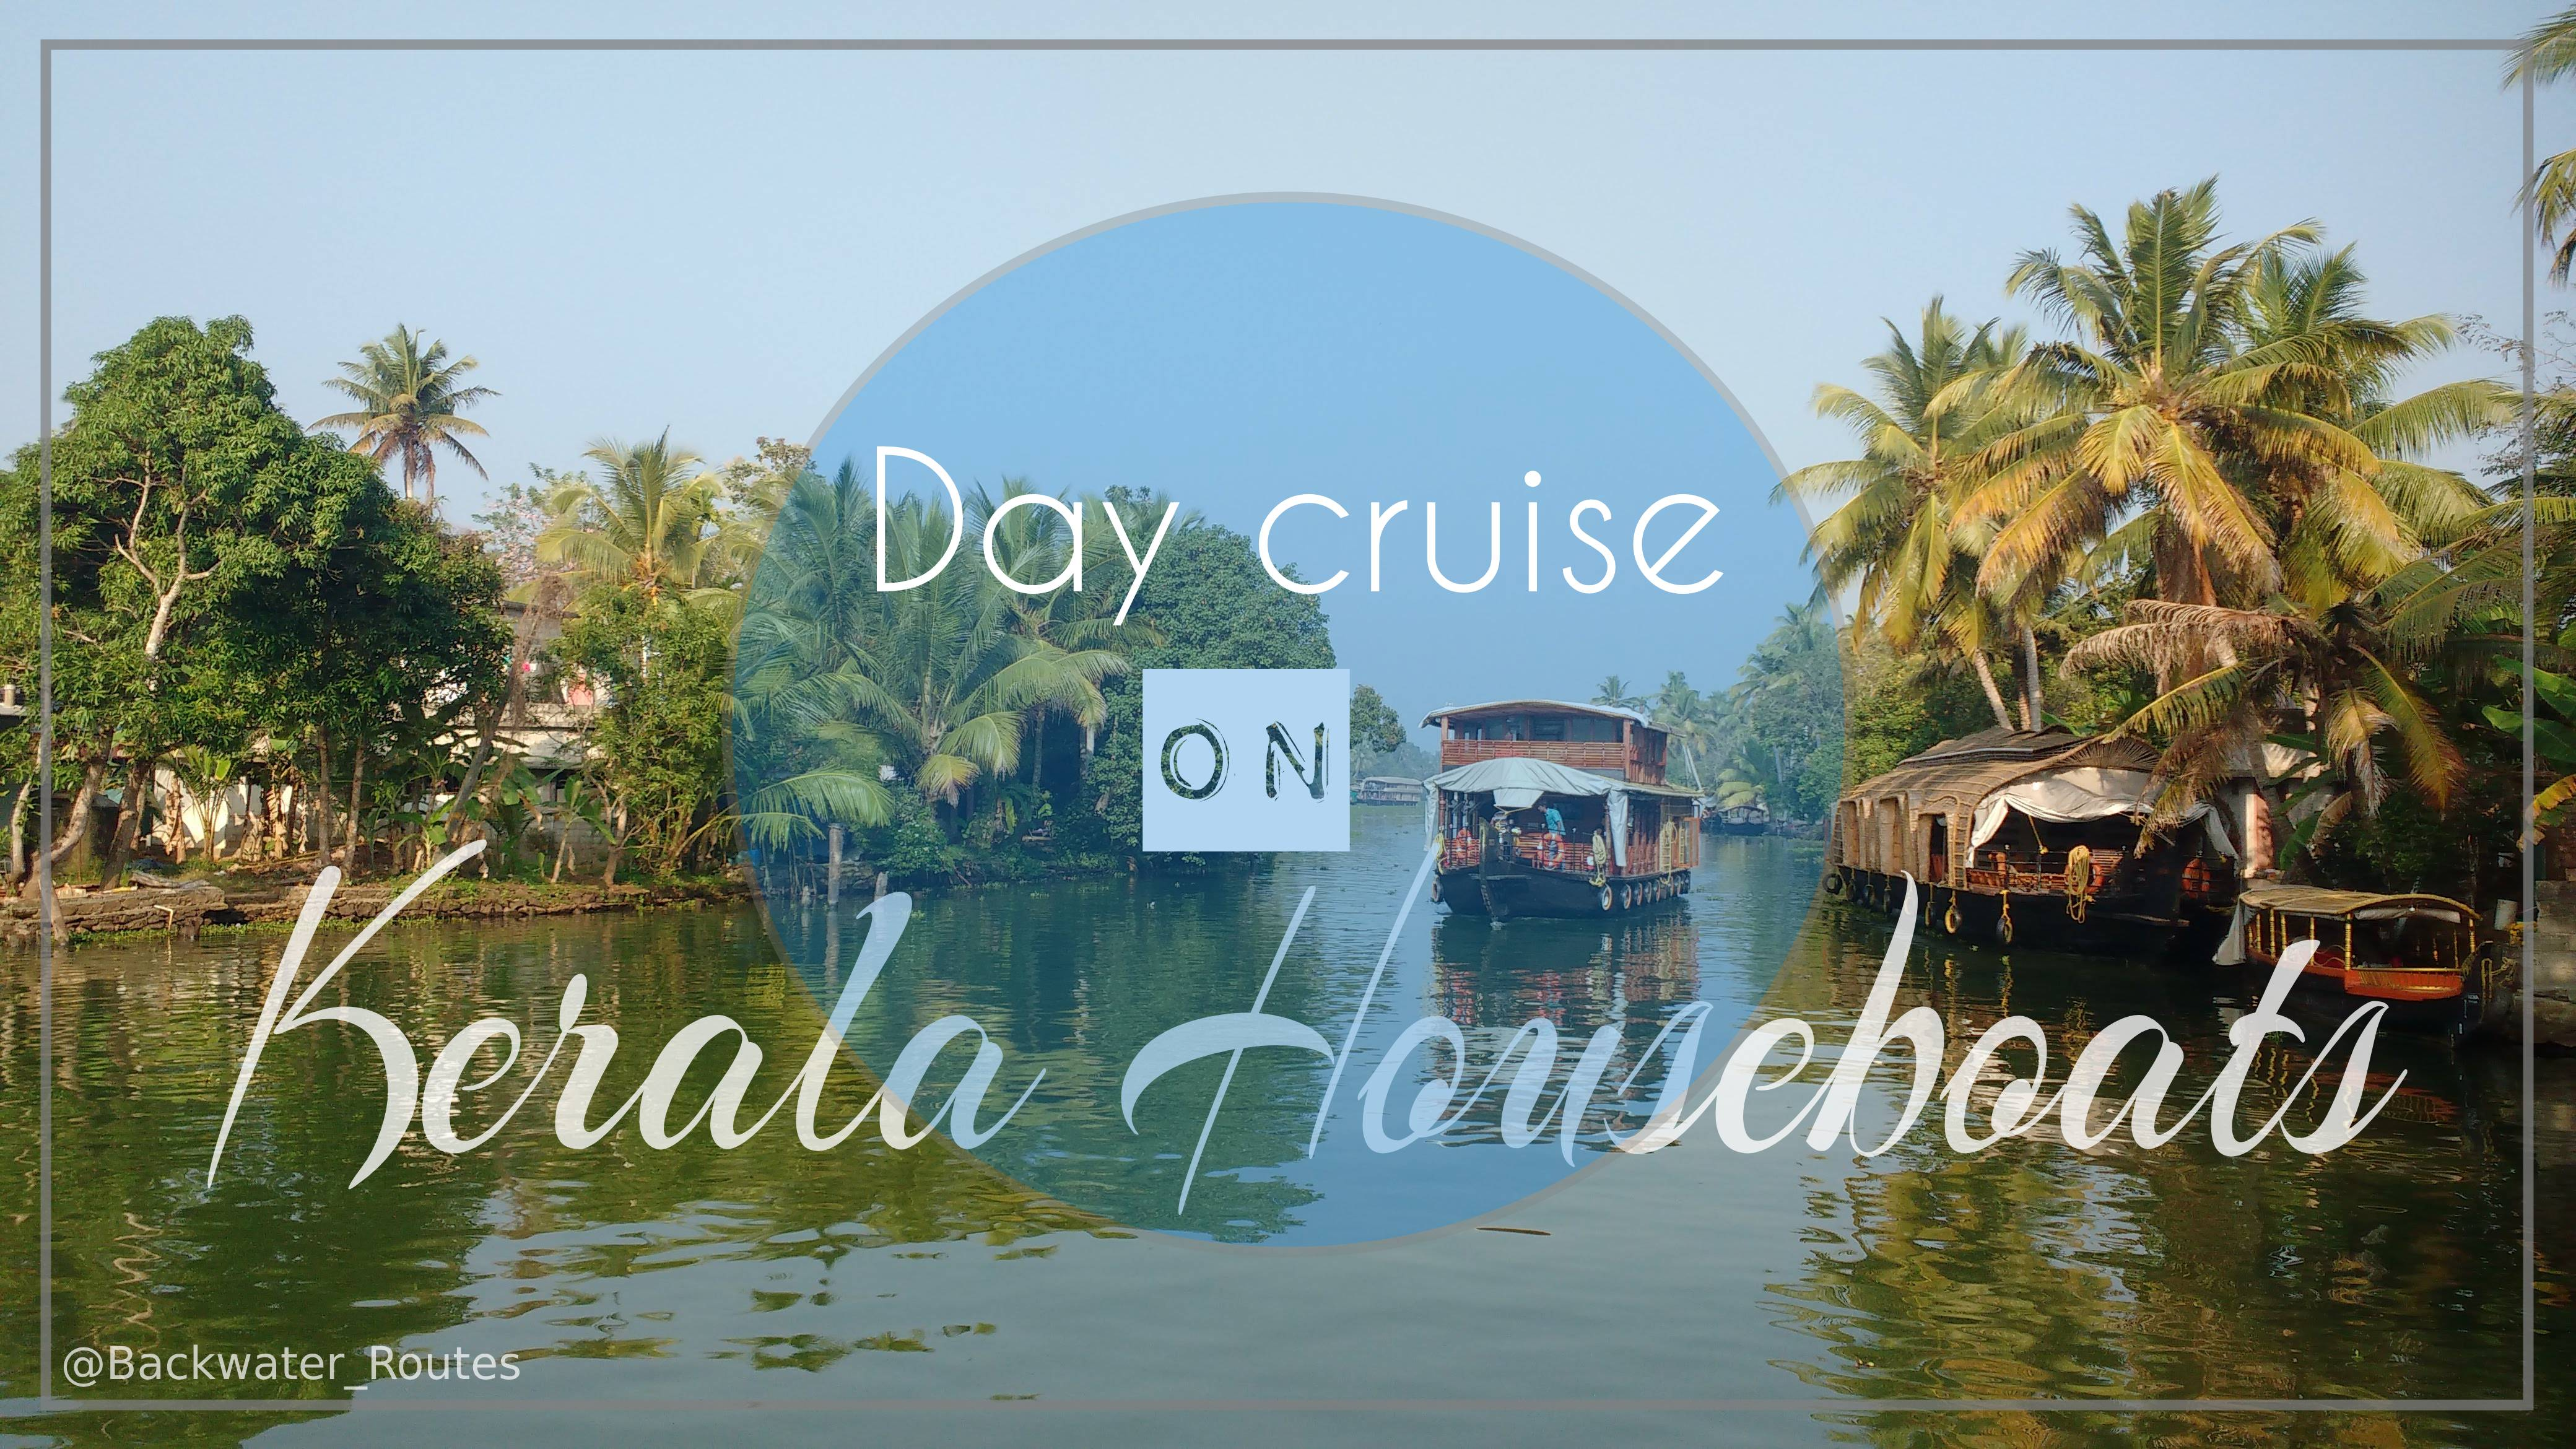 Day cruise on Kerala Houseboat